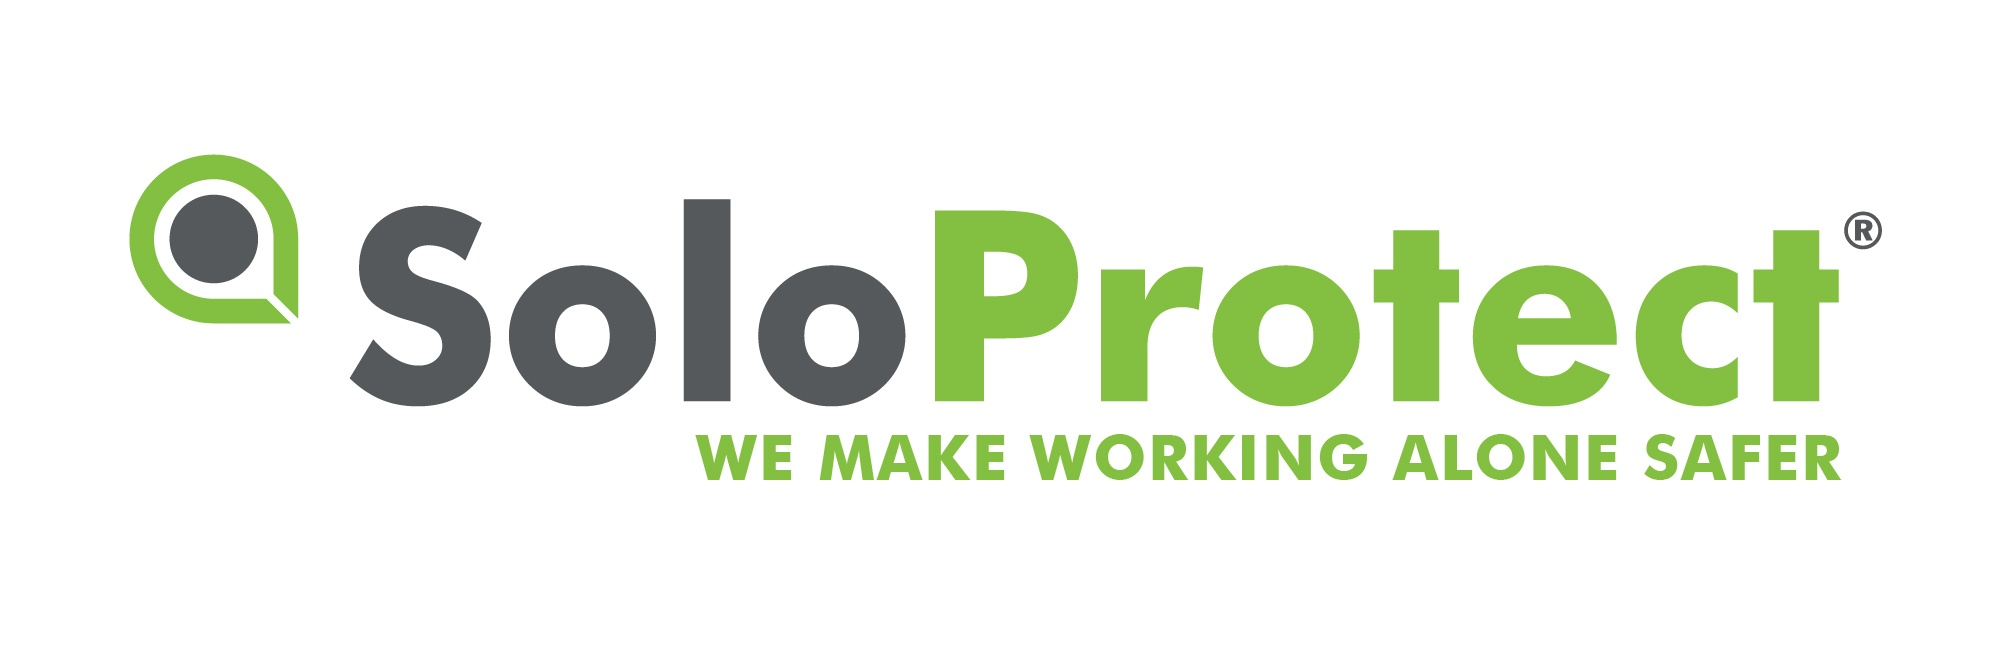 SoloProtect